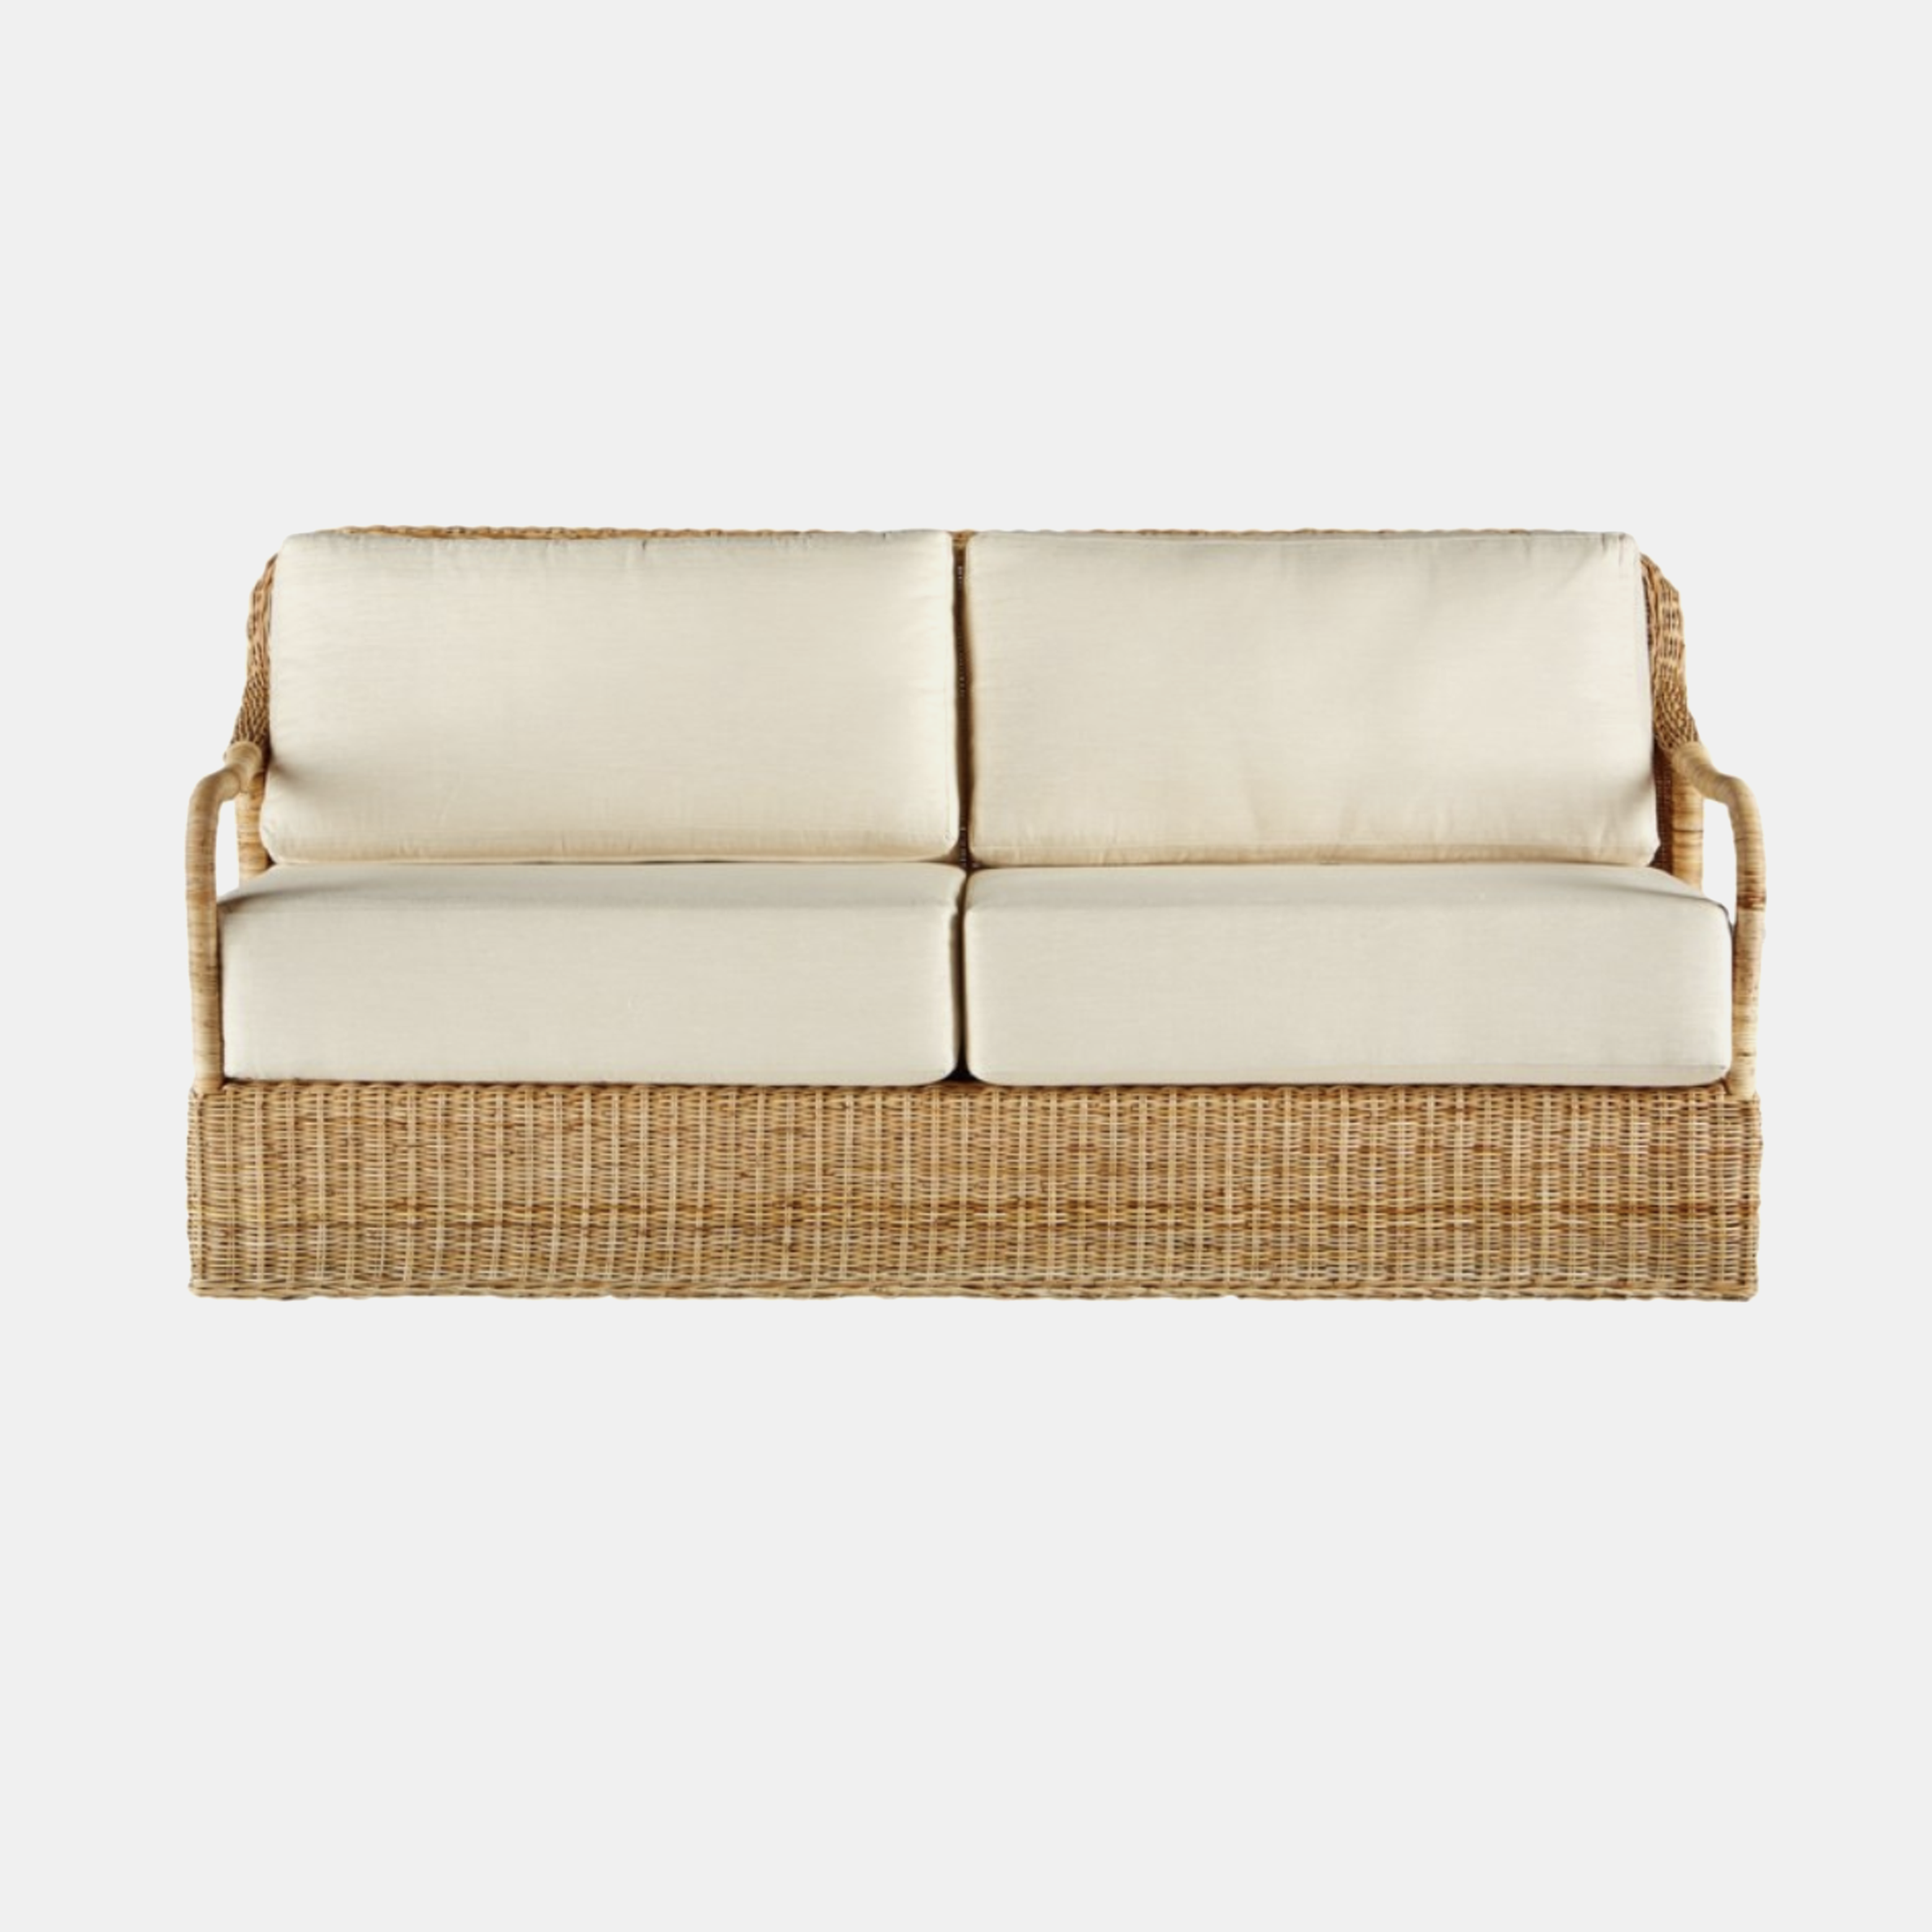 Desmona Sofa  76'' x 33.5'' x 35'' Also available as lounge chair. SKU744SLM